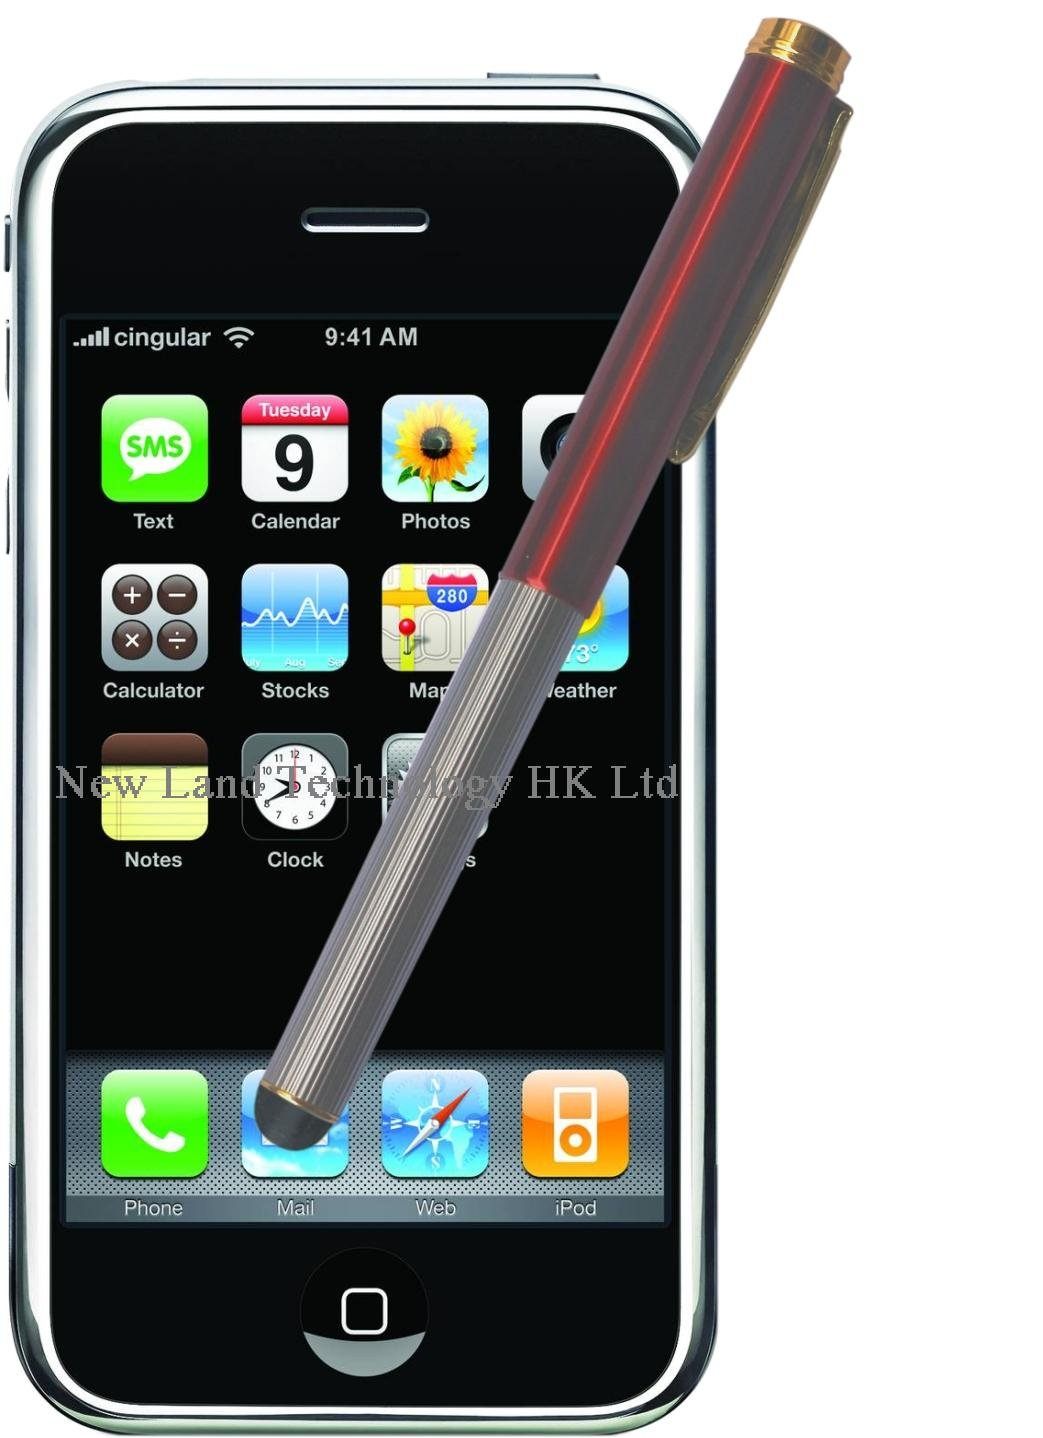 stylus for iPhone , iPad